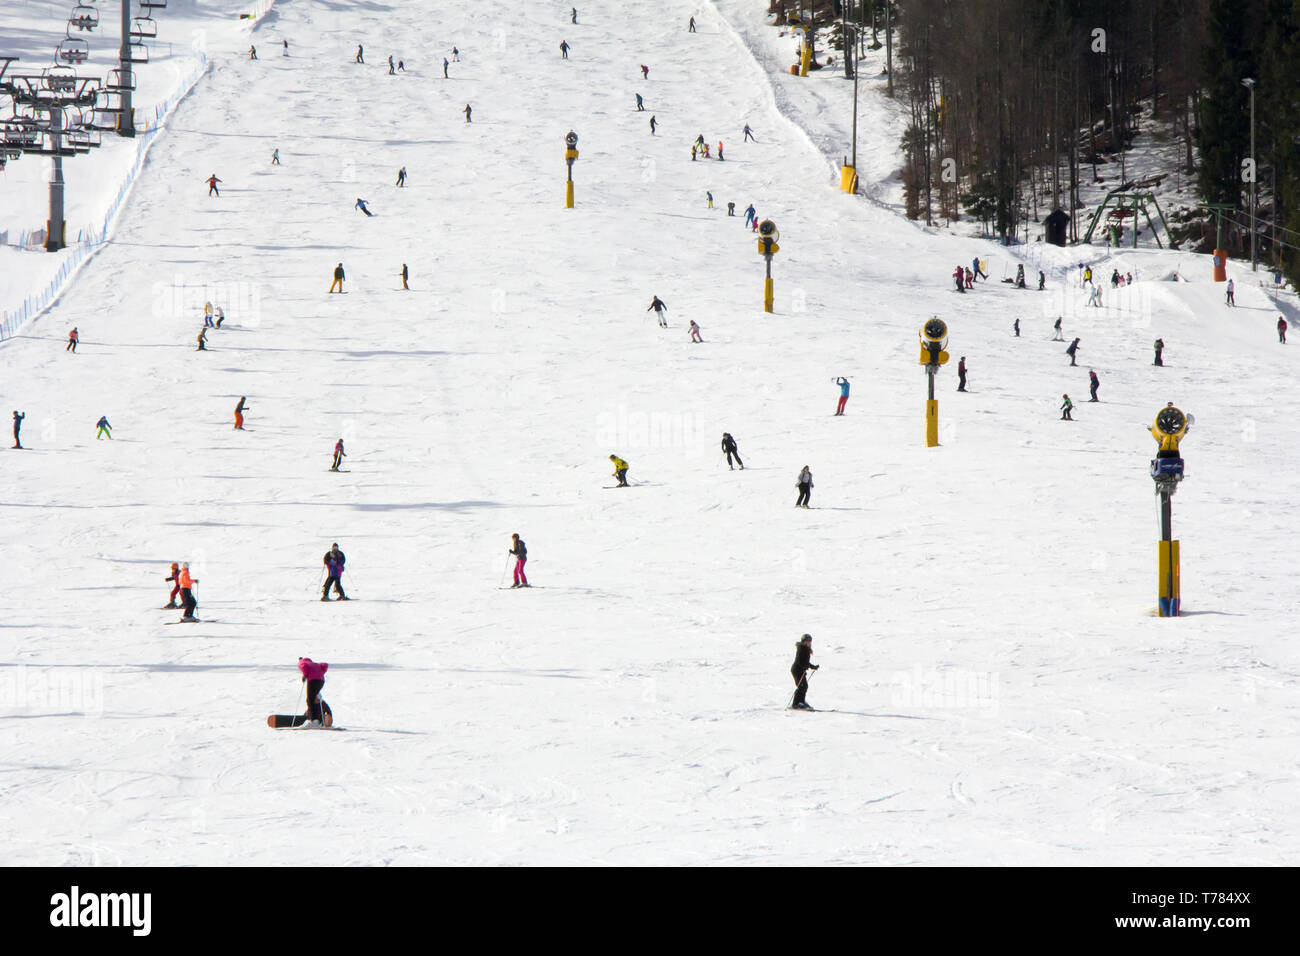 Lots of skiers and snowboarders on the slope at ski resort - Stock Image